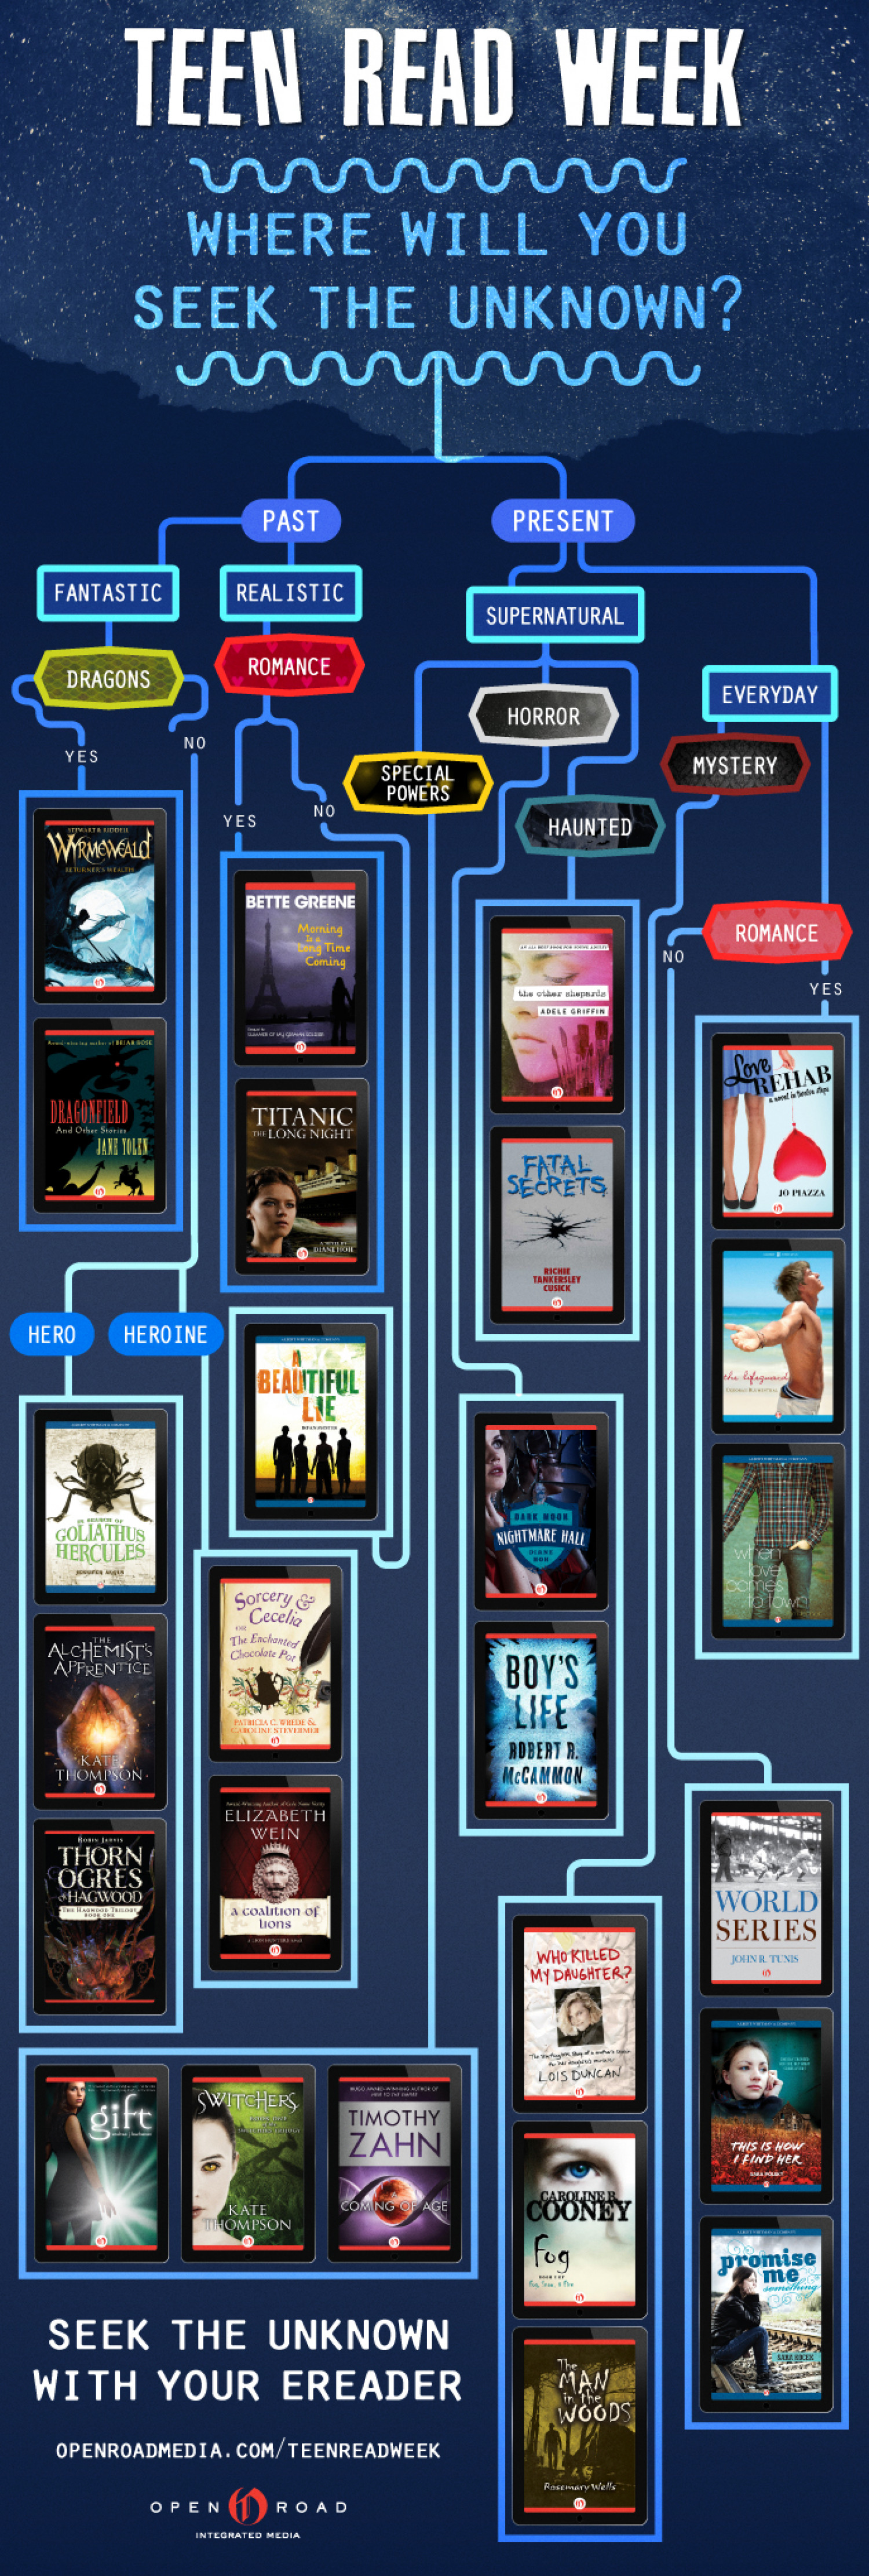 Teen Read Week: Where Will You Seek the Unknown? Infographic